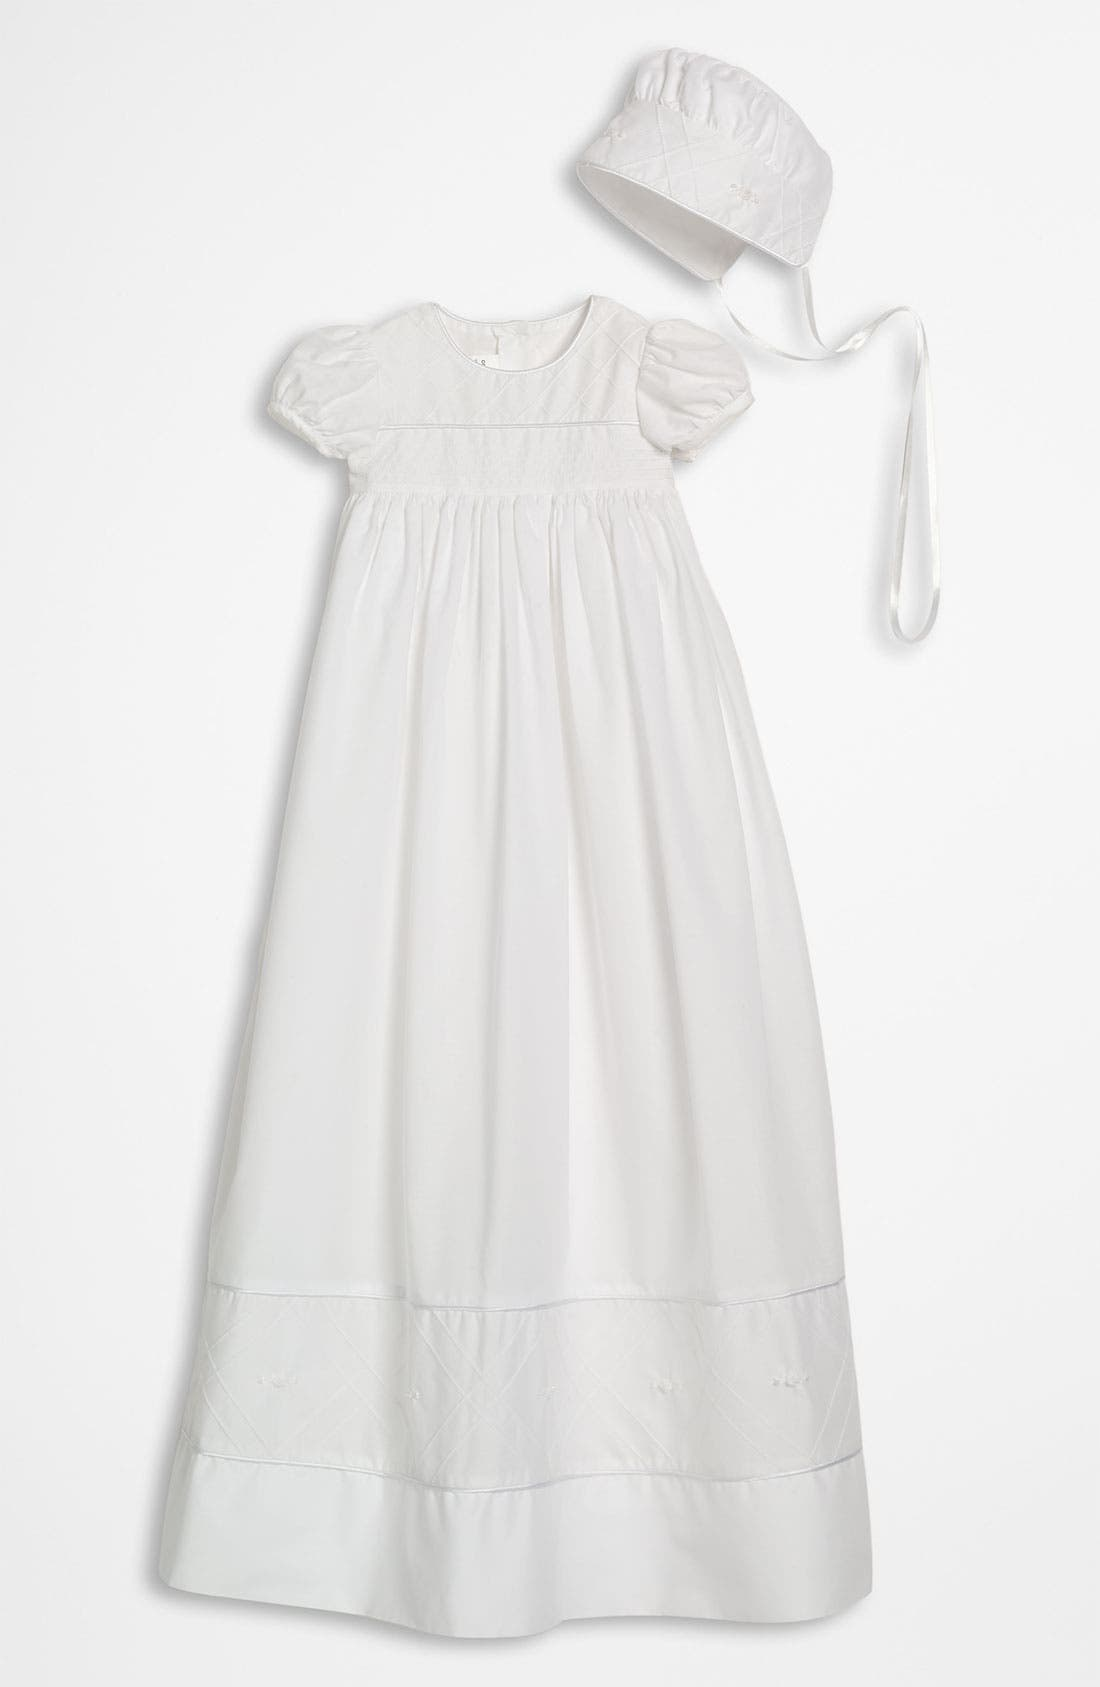 Alternate Image 1 Selected - Little Things Mean a Lot Gown & Bonnet (Baby)